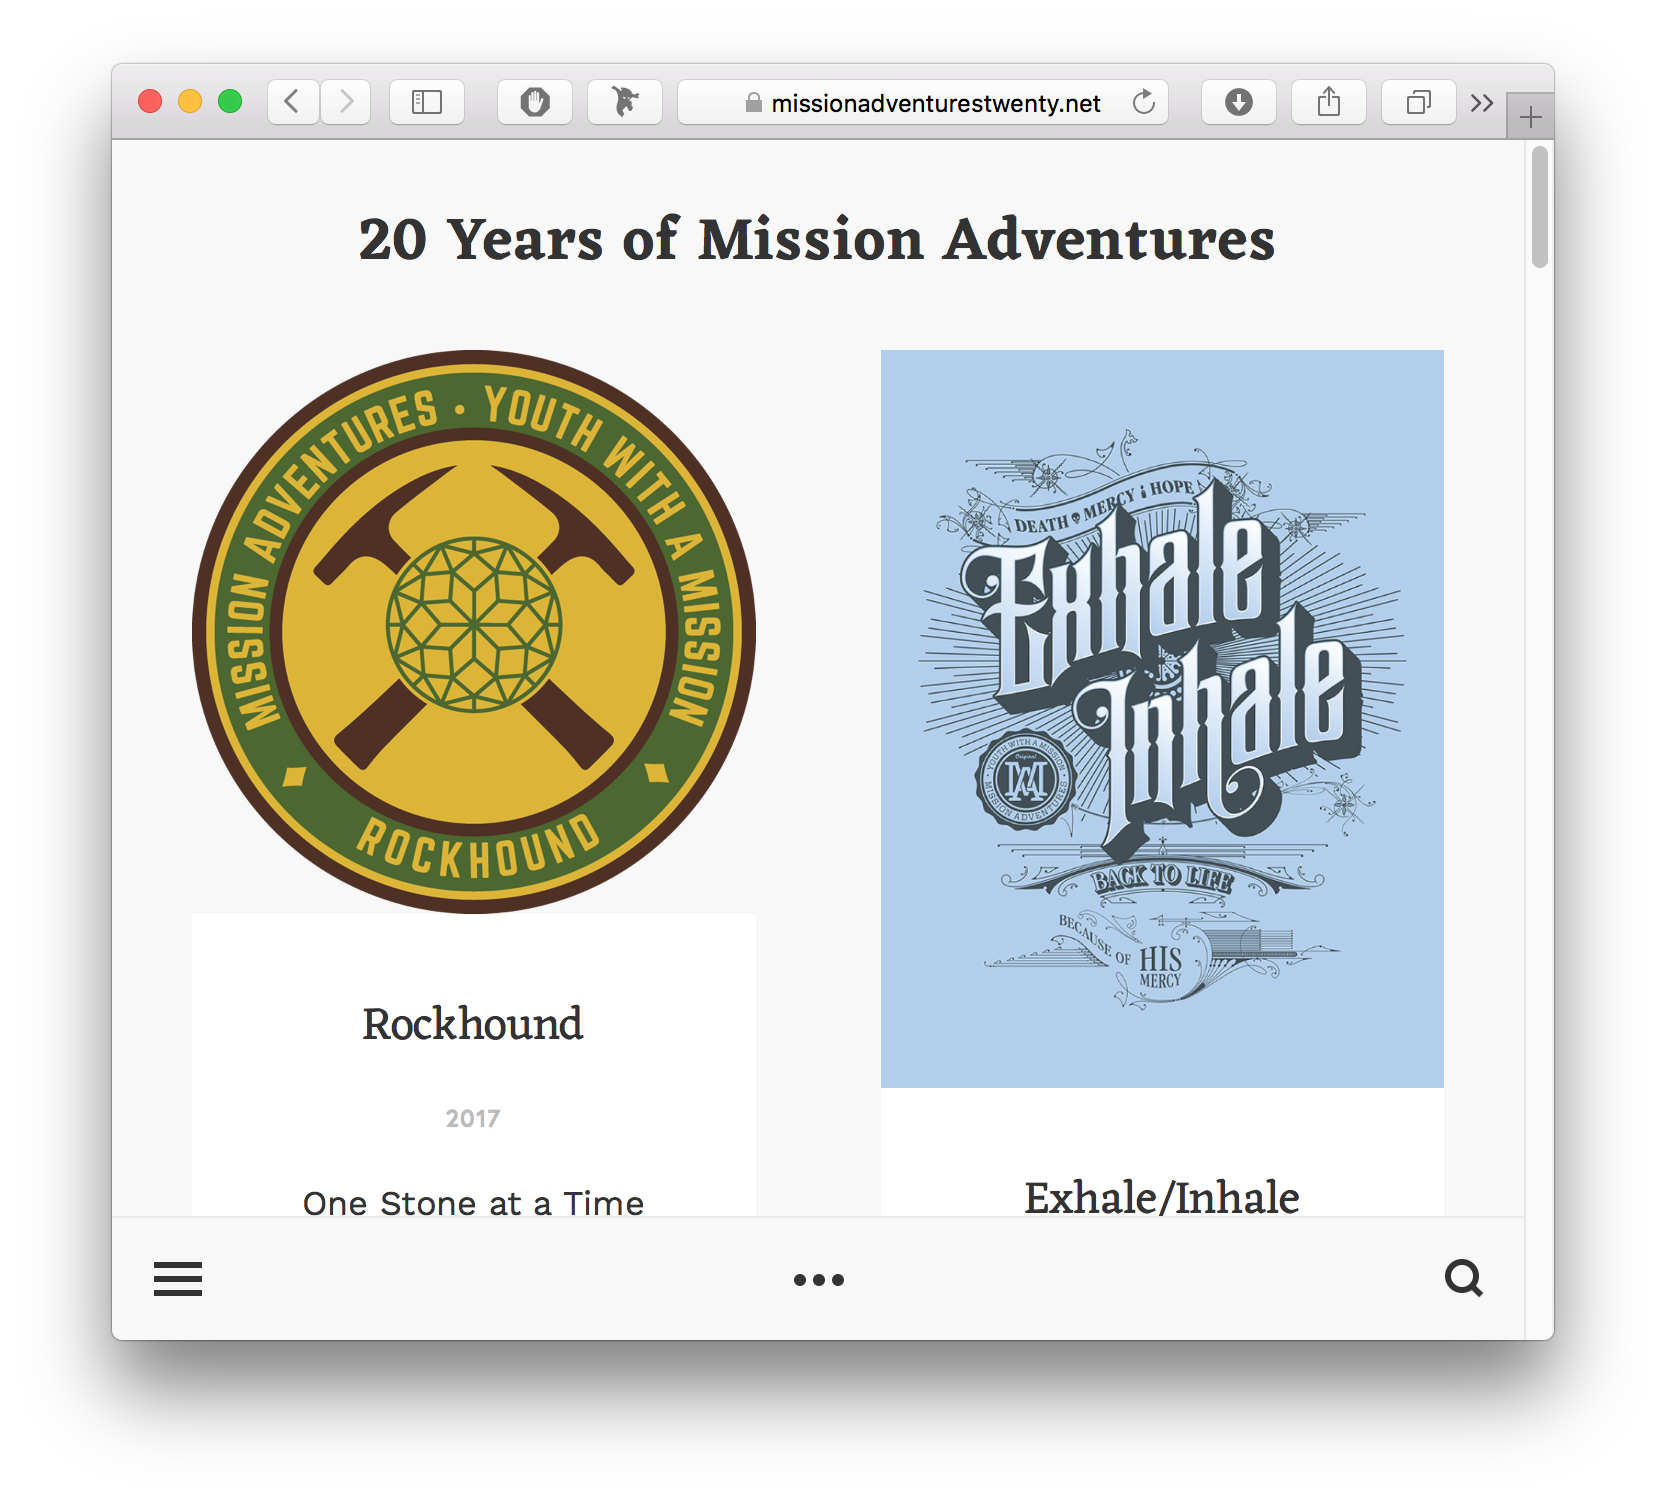 Mission Adventures Themes 1997-2017